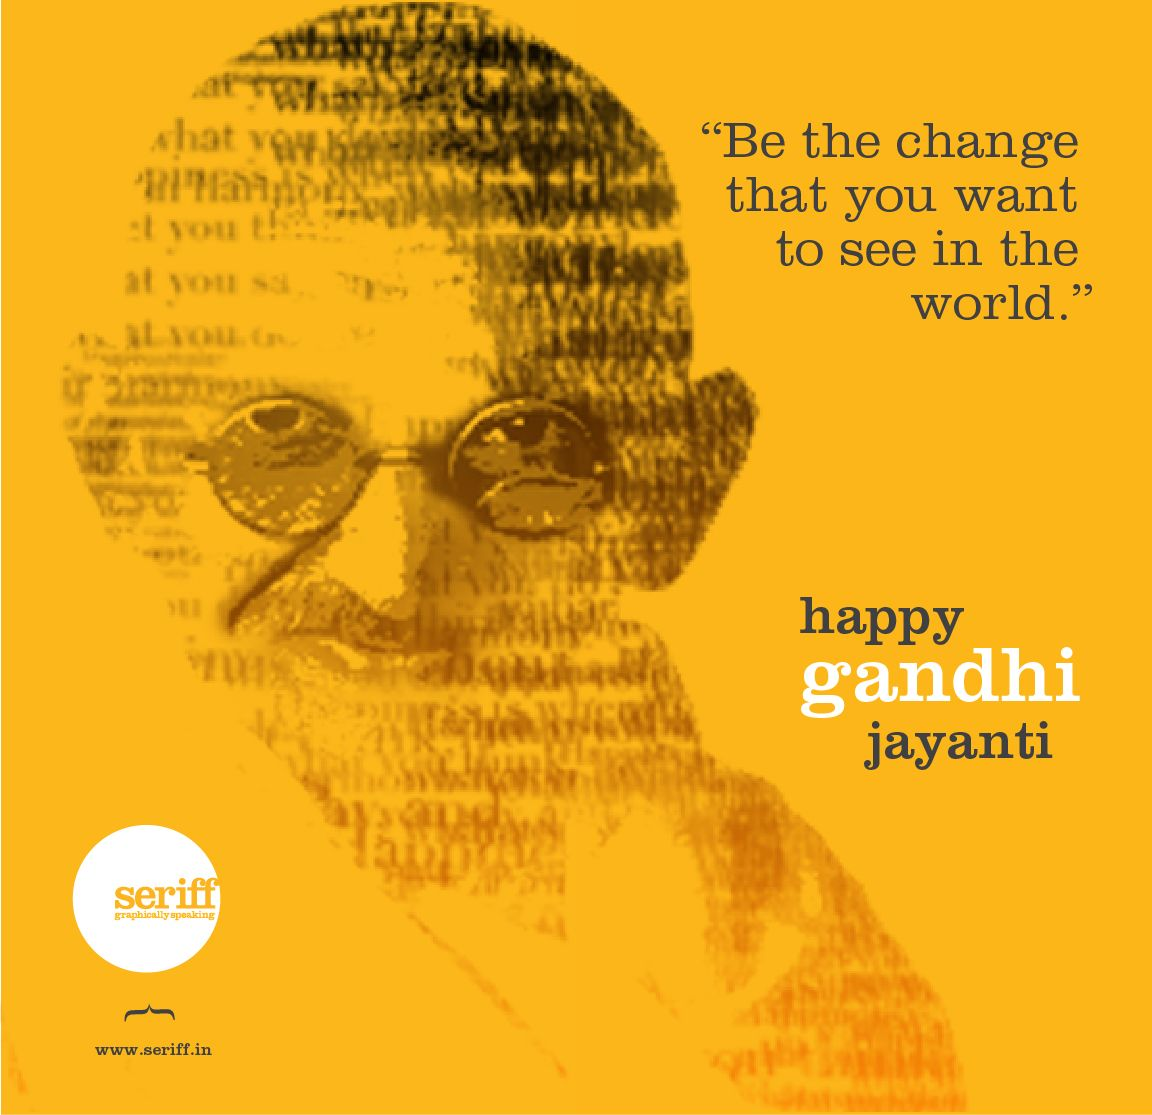 Happy Gandhi Jayanti Be the change you want to see in the